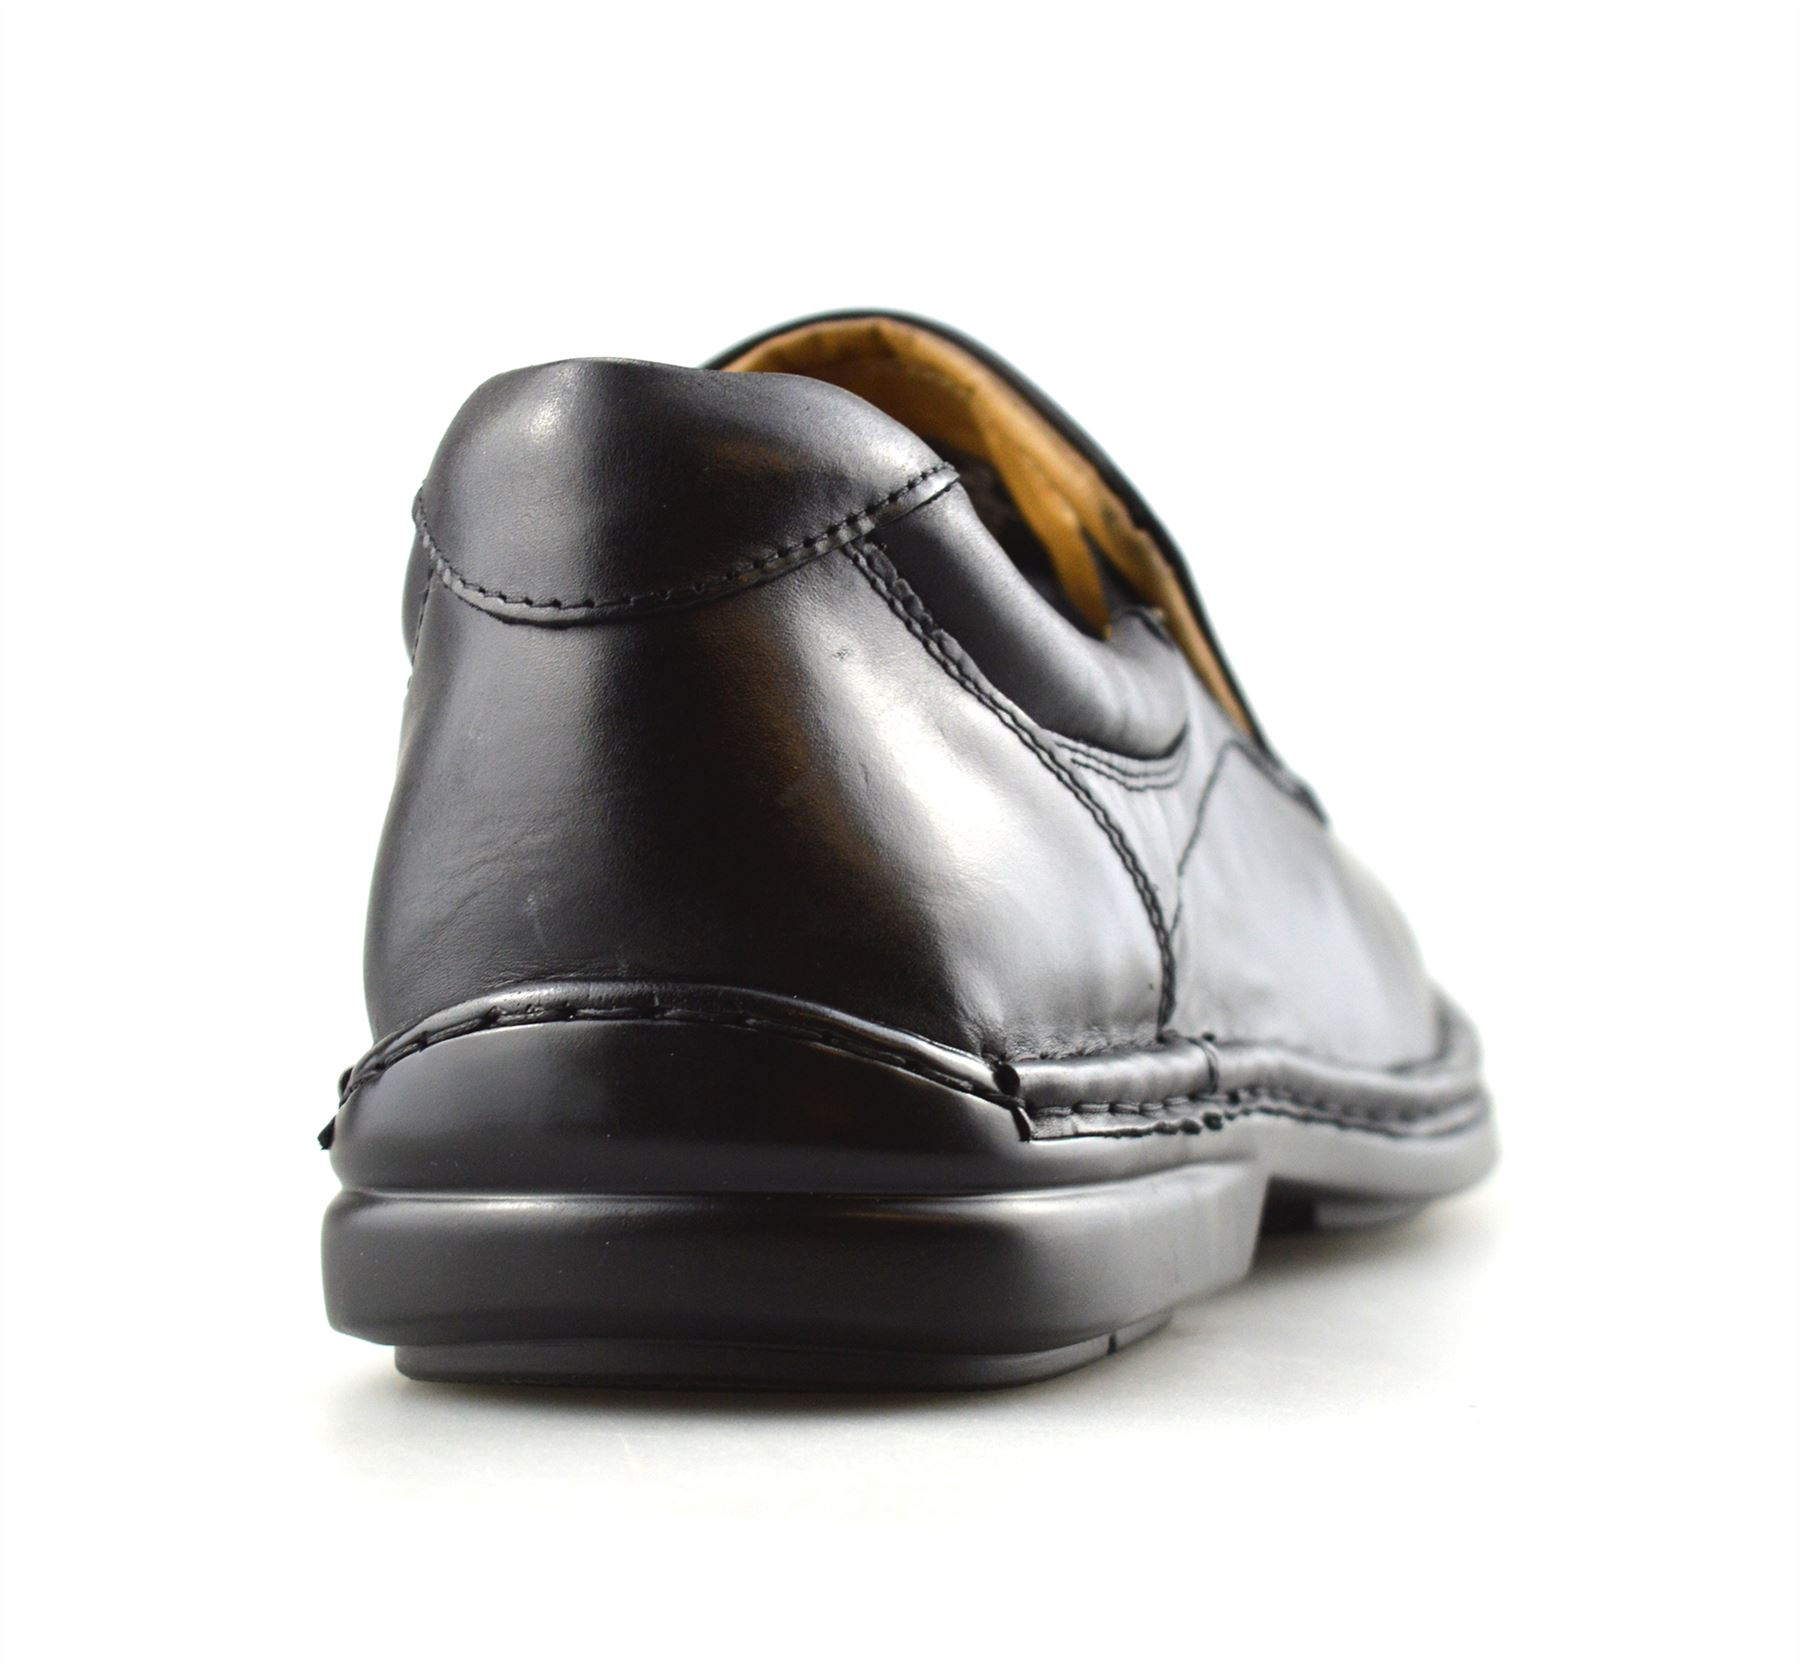 Mens-Hush-Puppies-Leather-Wide-Fit-Smart-Casual-Lace-Up-Work-Office-Shoes-Size thumbnail 17